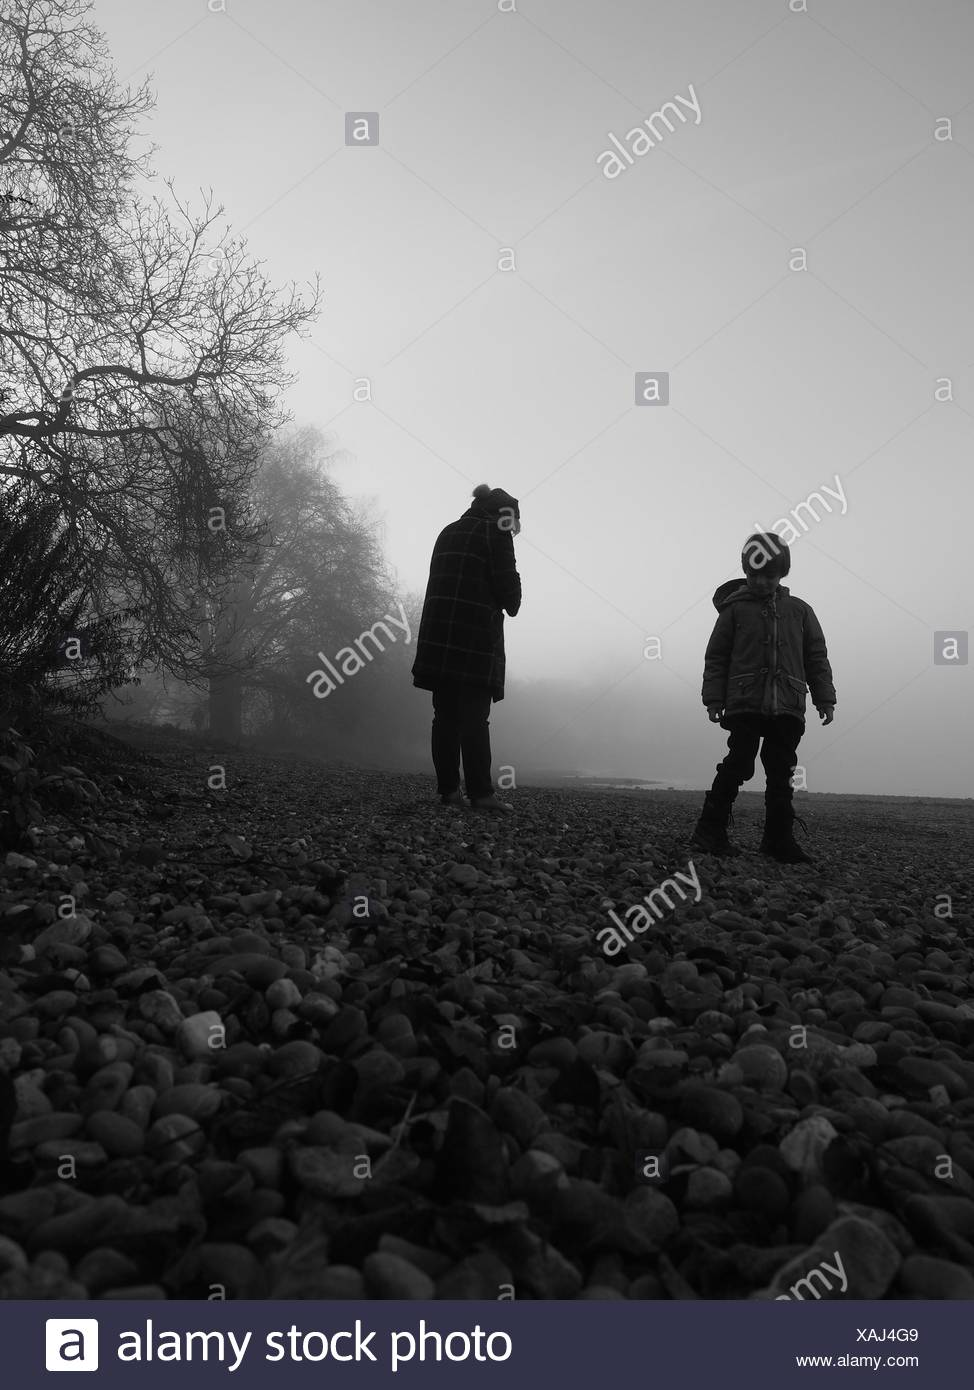 Children On Field During Foggy Weather - Stock Image